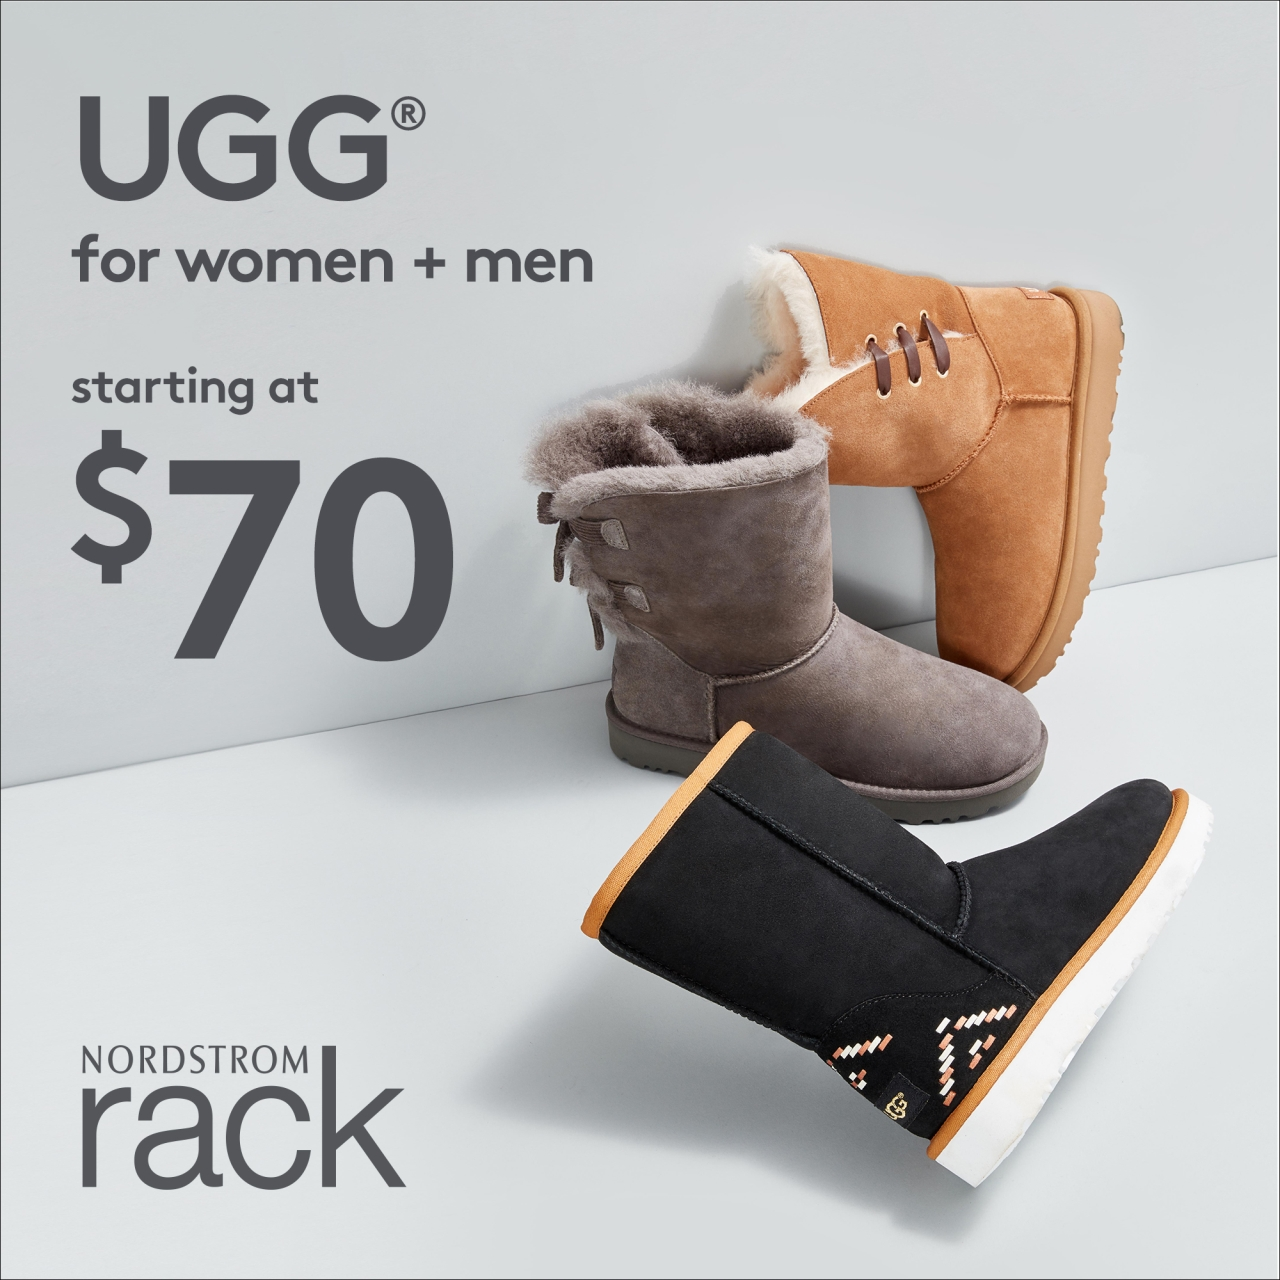 UGG, for men & women, in stores now at Nordstrom Rack!